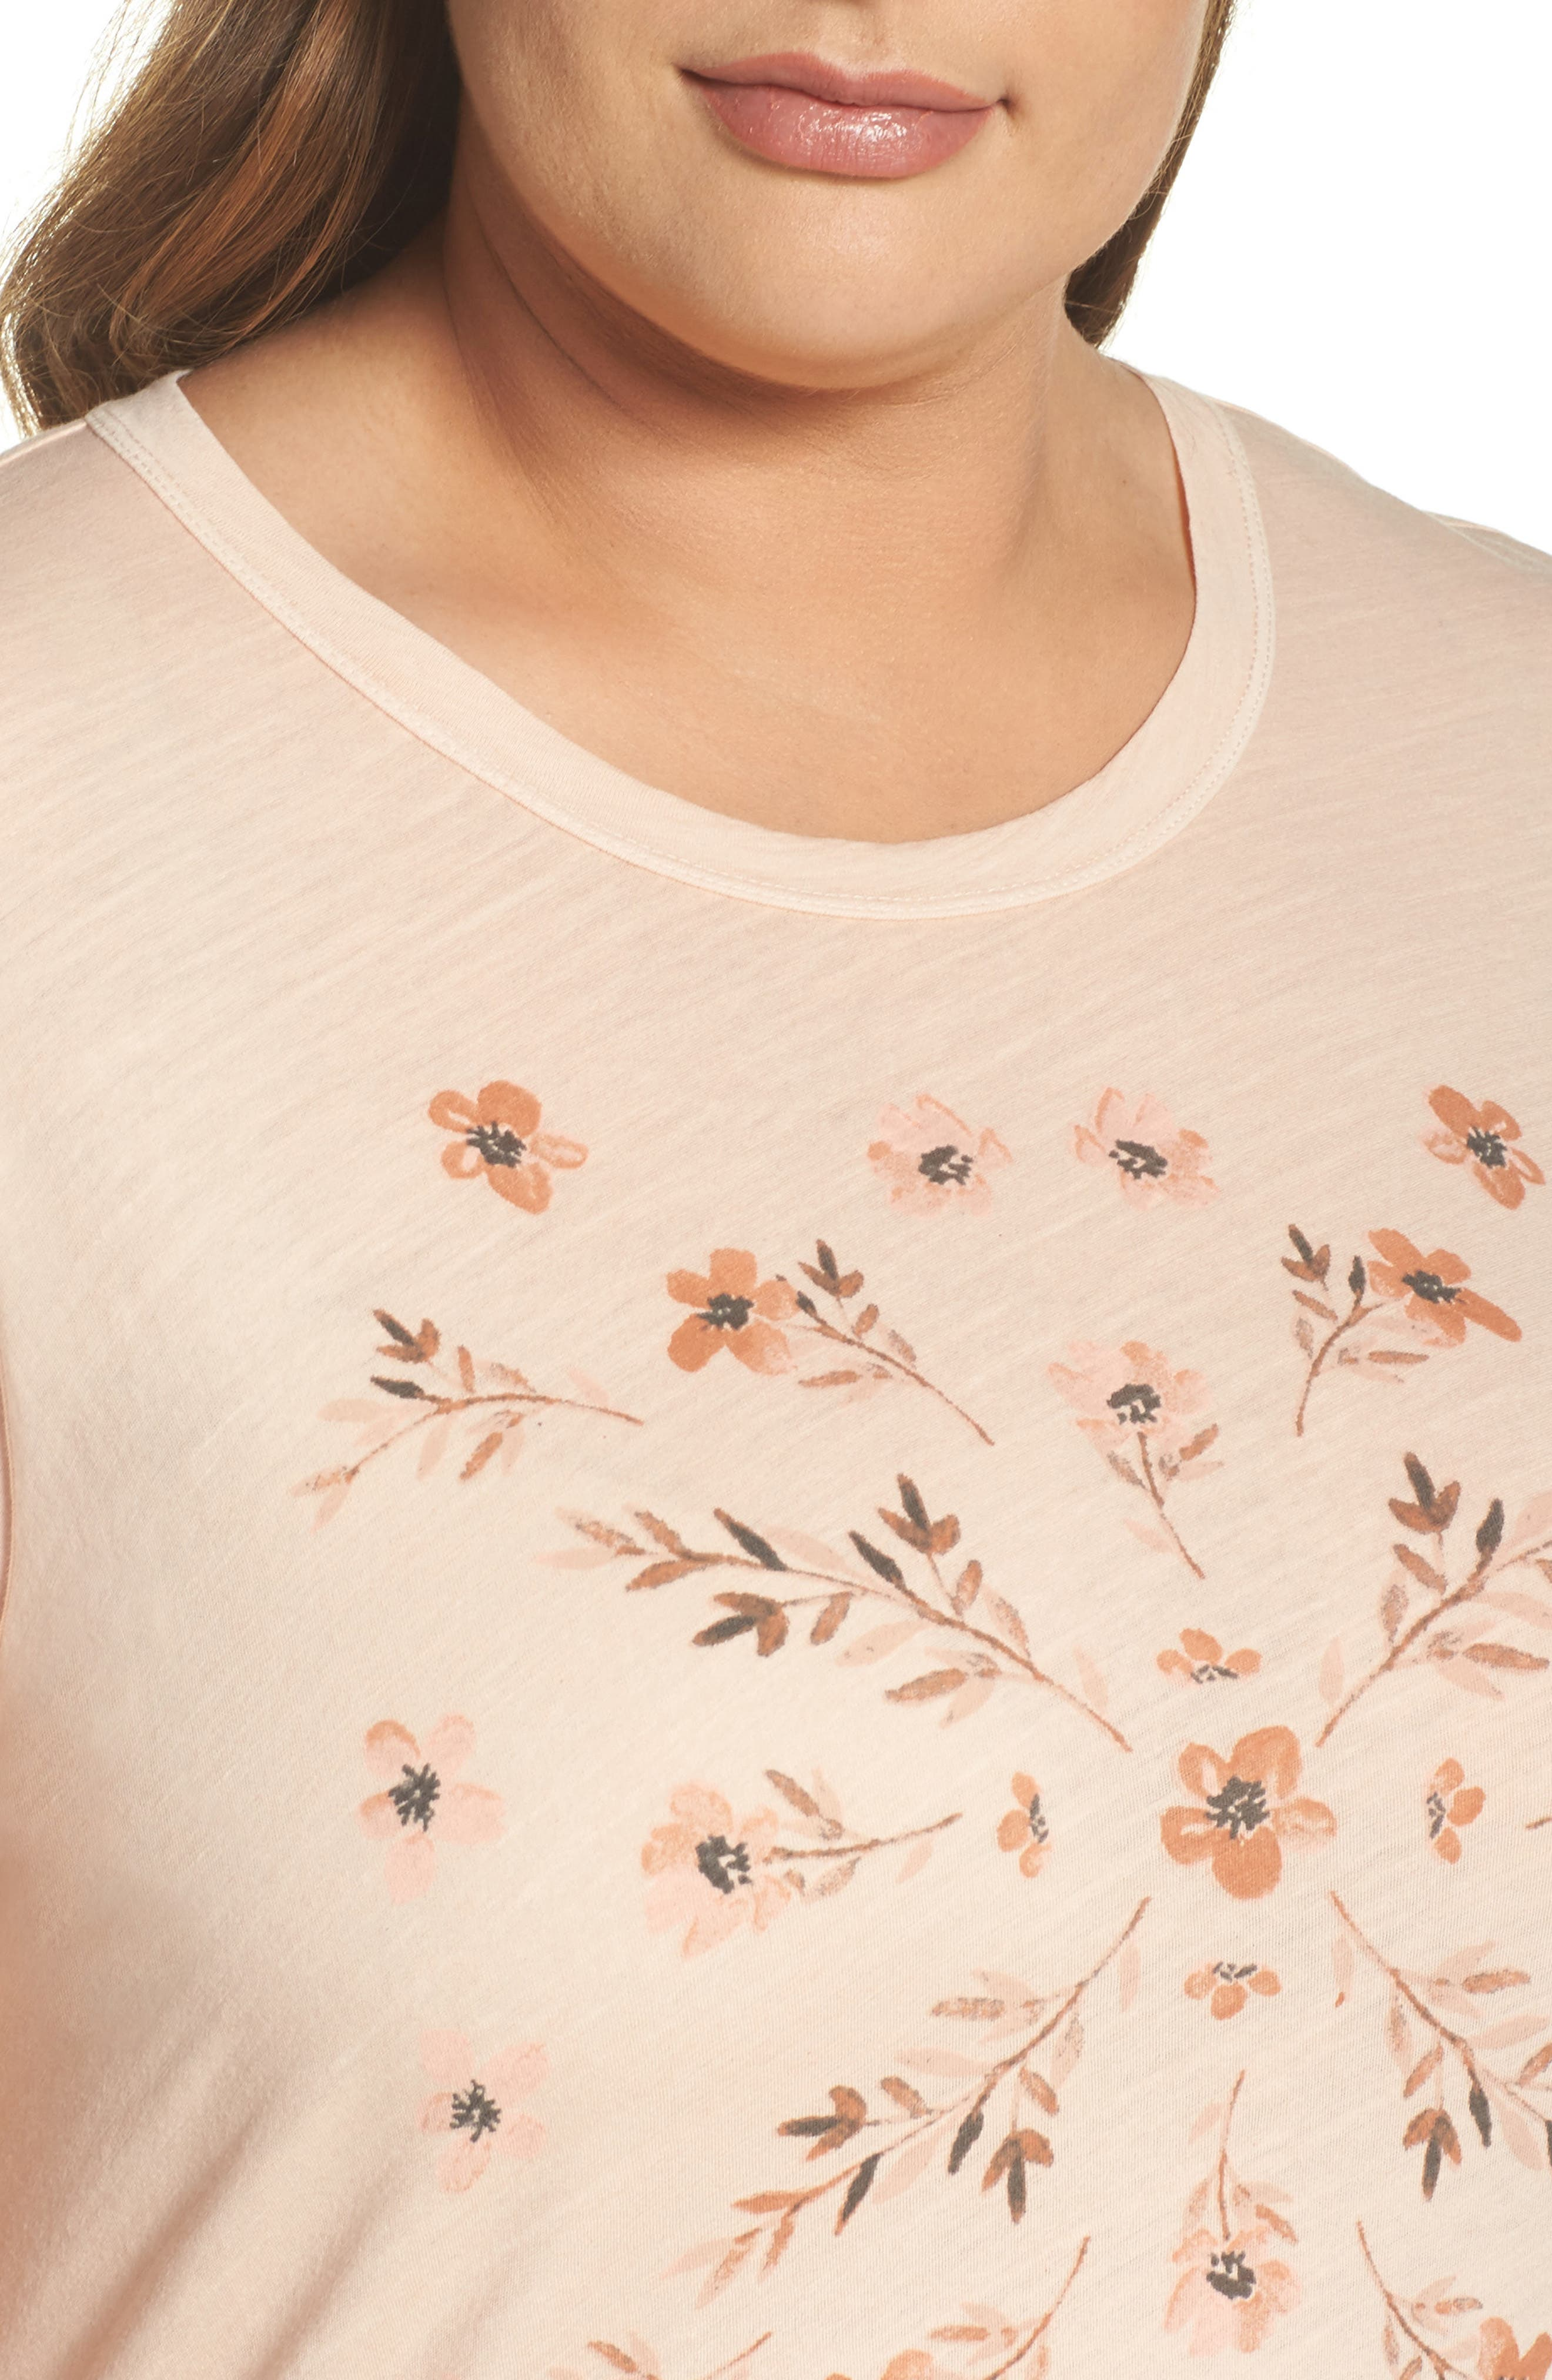 Stamped Flowers Tee,                             Alternate thumbnail 4, color,                             Shell